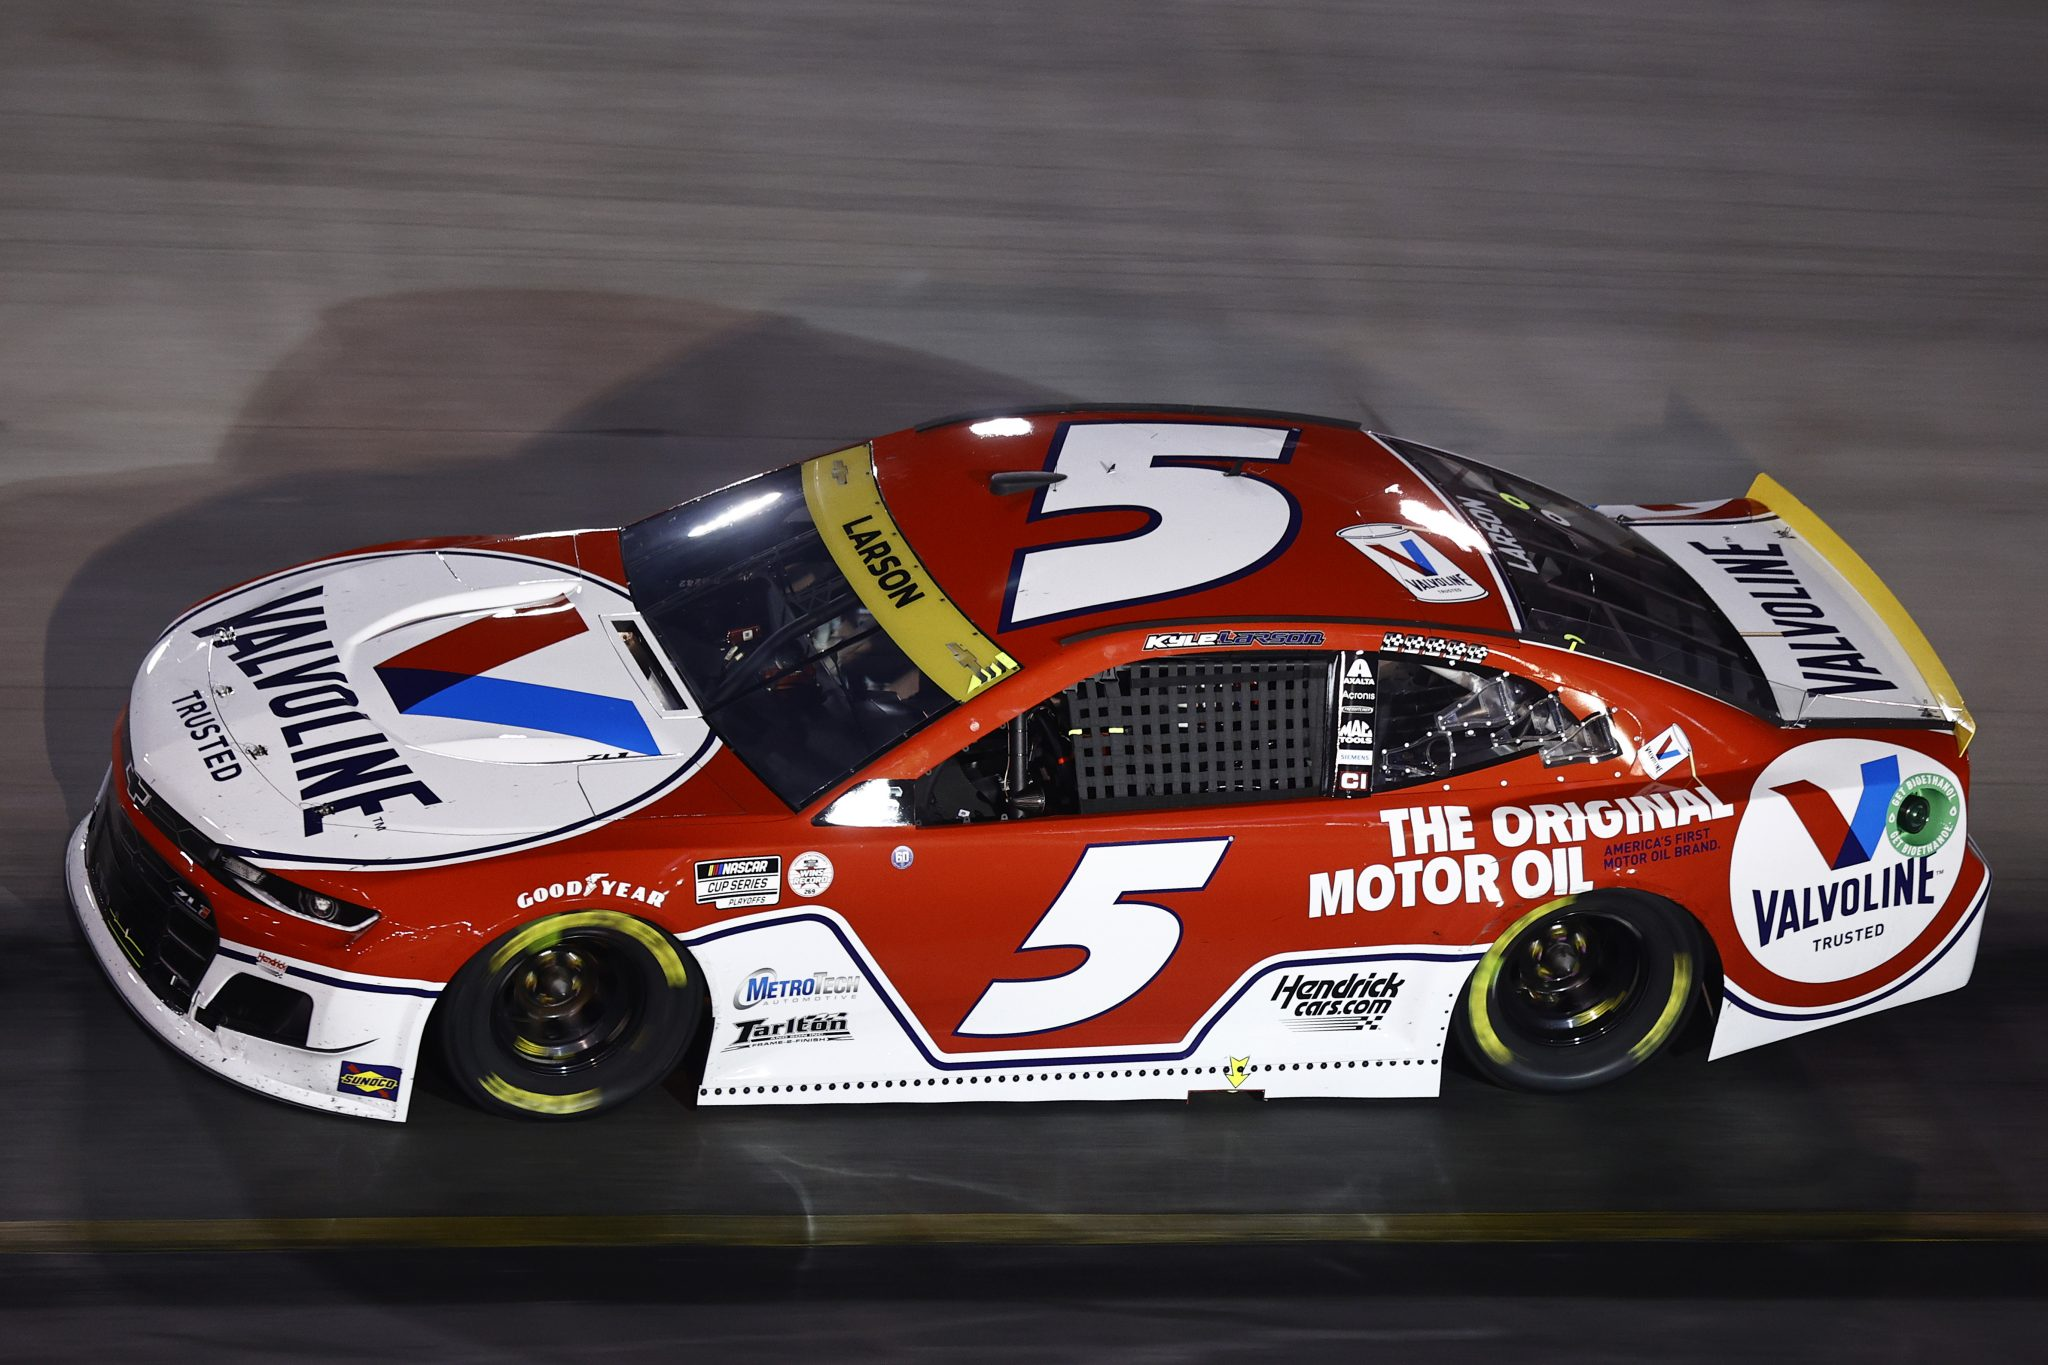 BRISTOL, TENNESSEE - SEPTEMBER 18: Kyle Larson, driver of the #5 Valvoline Chevrolet, drives during the NASCAR Cup Series Bass Pro Shops Night Race at Bristol Motor Speedway on September 18, 2021 in Bristol, Tennessee. (Photo by Jared C. Tilton/Getty Images) | Getty Images